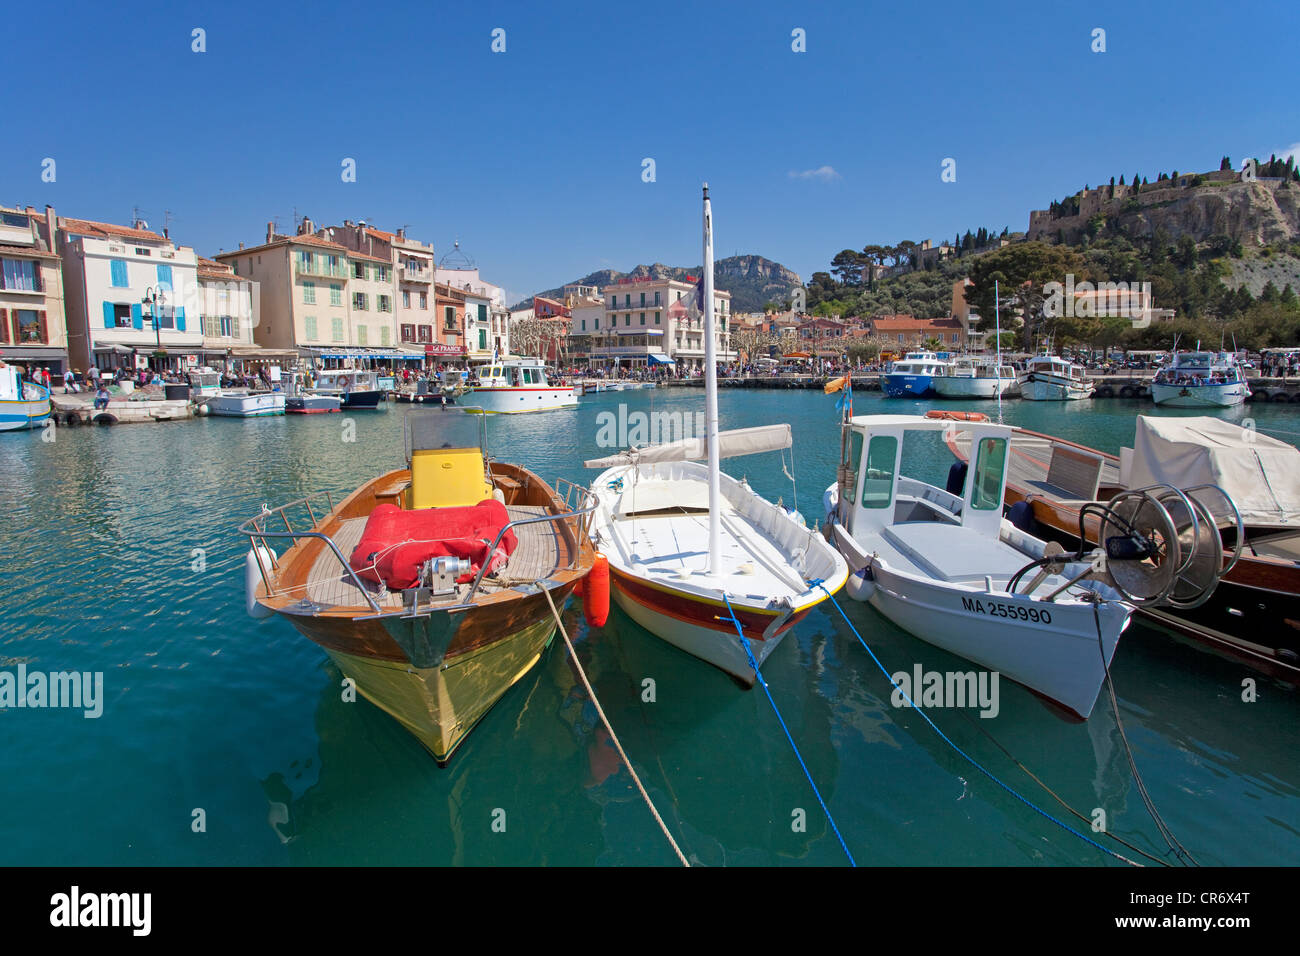 Fishing boats on moorings, Cassis, Bouches-du-Rhone, Southern France, France, Europe - Stock Image